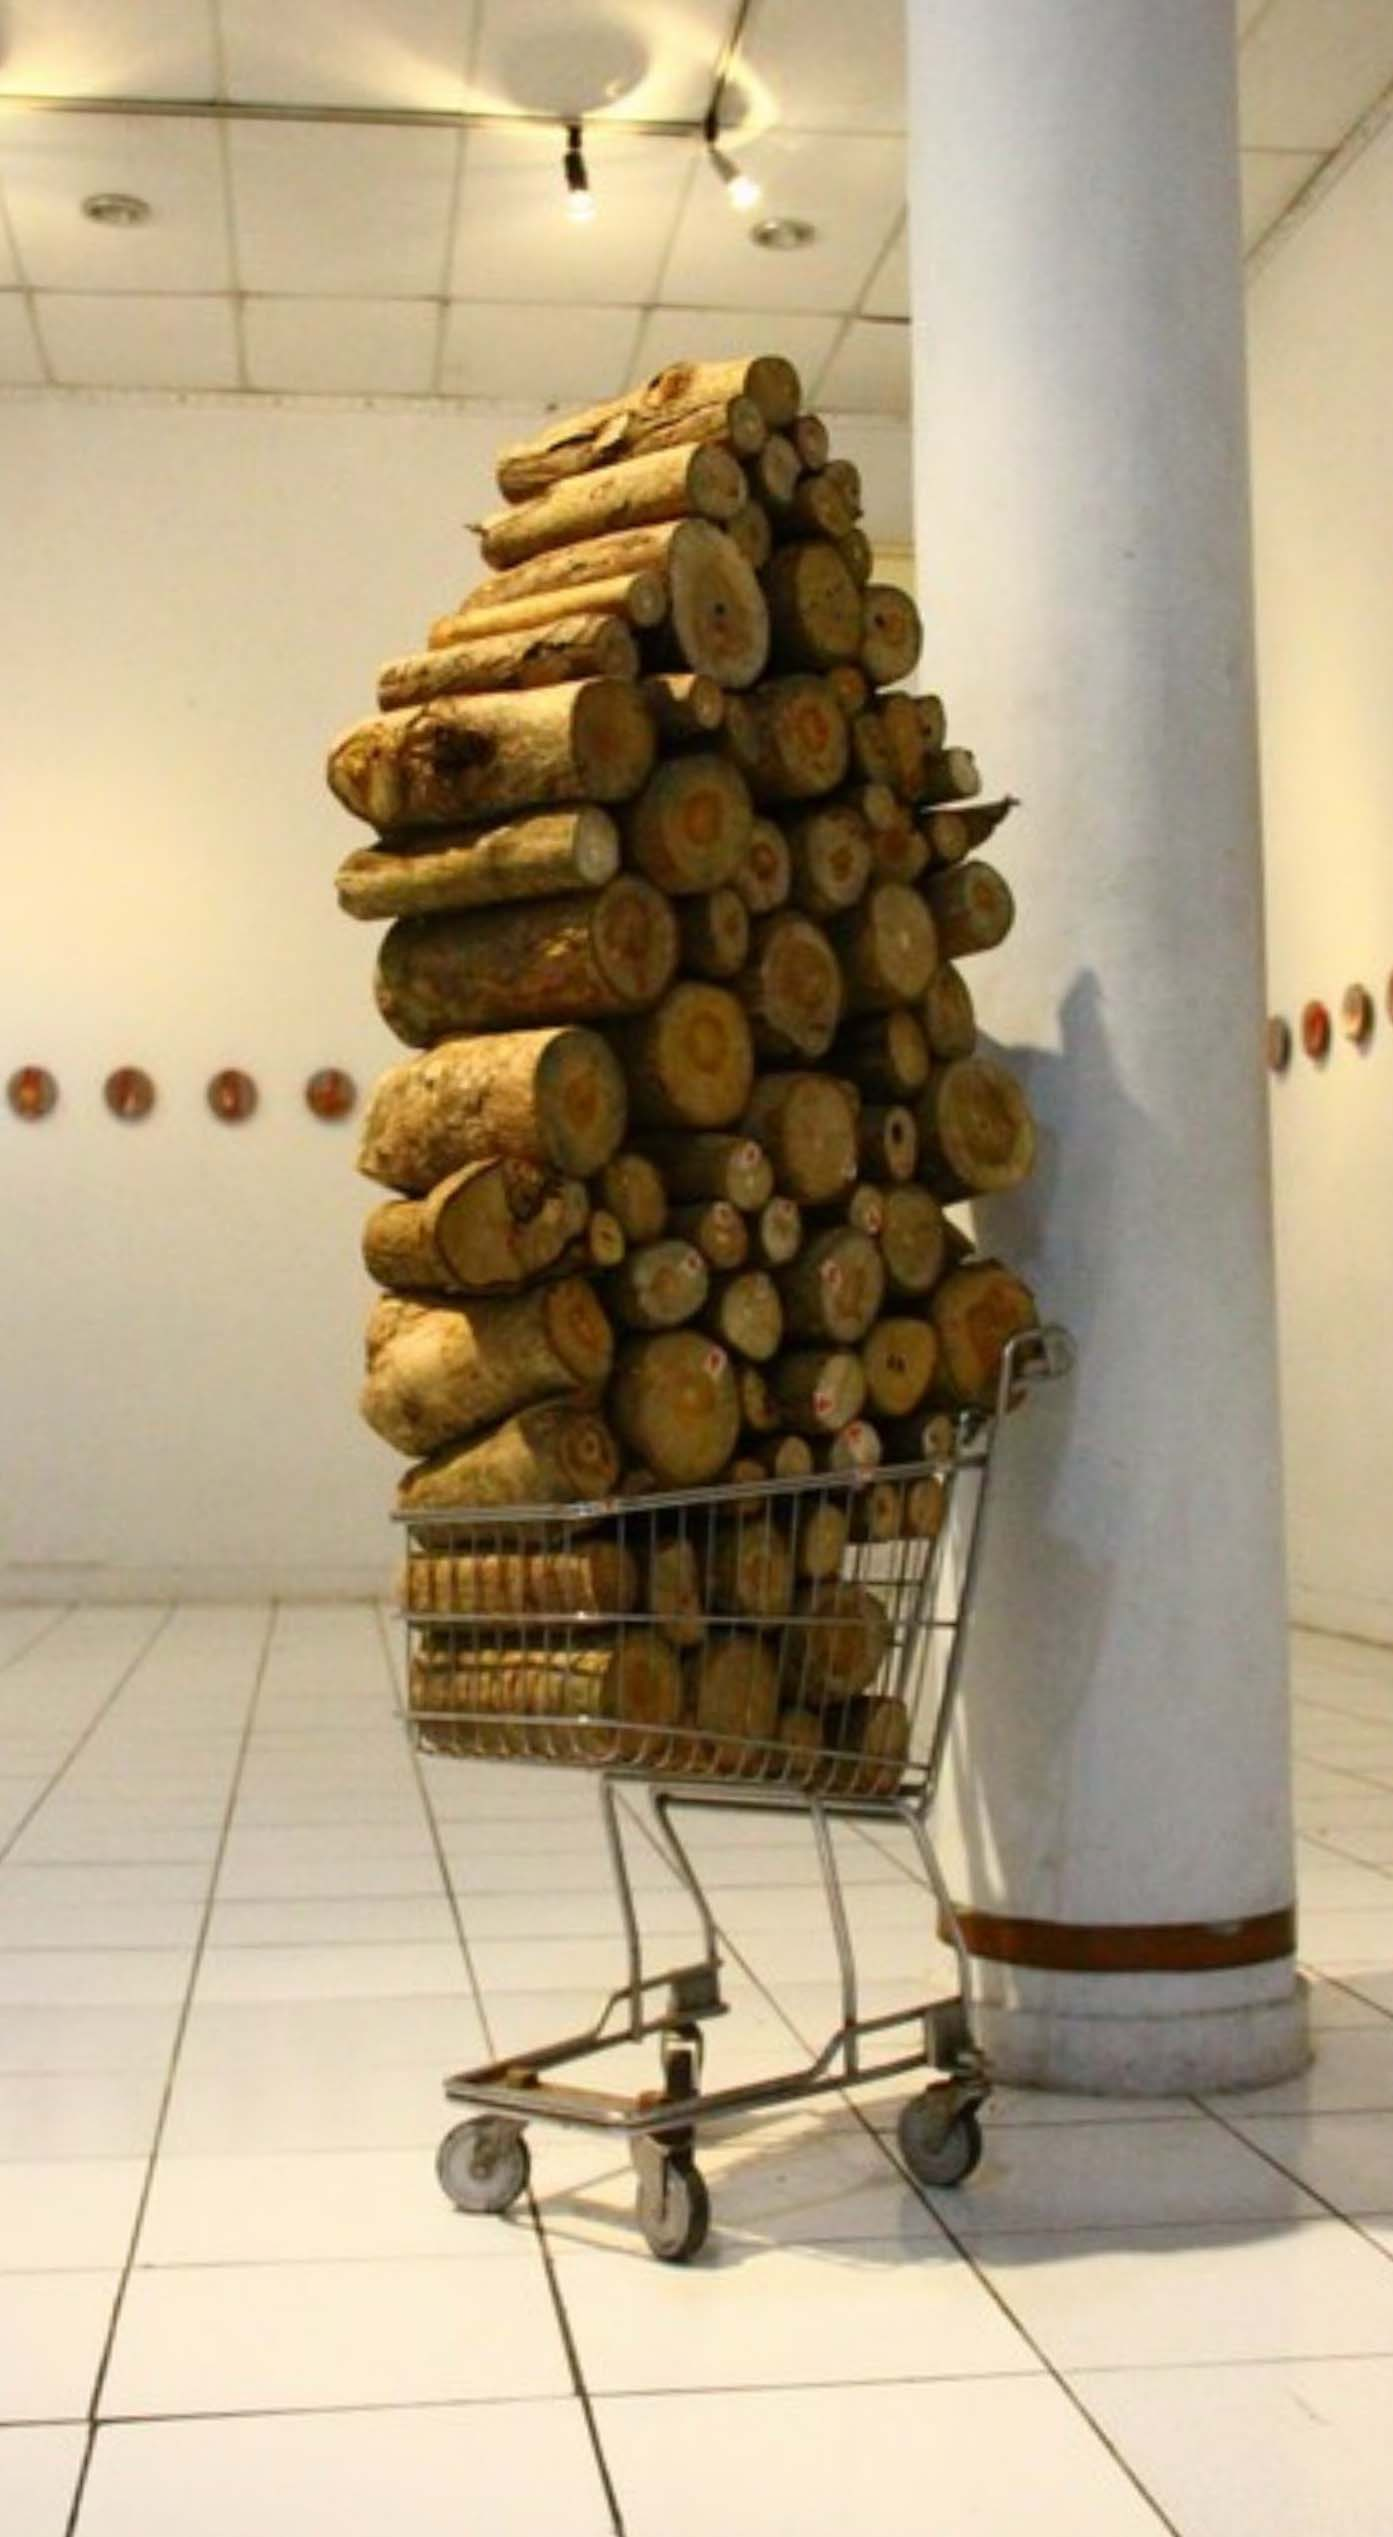 Kisah Sepanjang Jaman, Variable Dimension, 2013, Wood, Stainless Steel